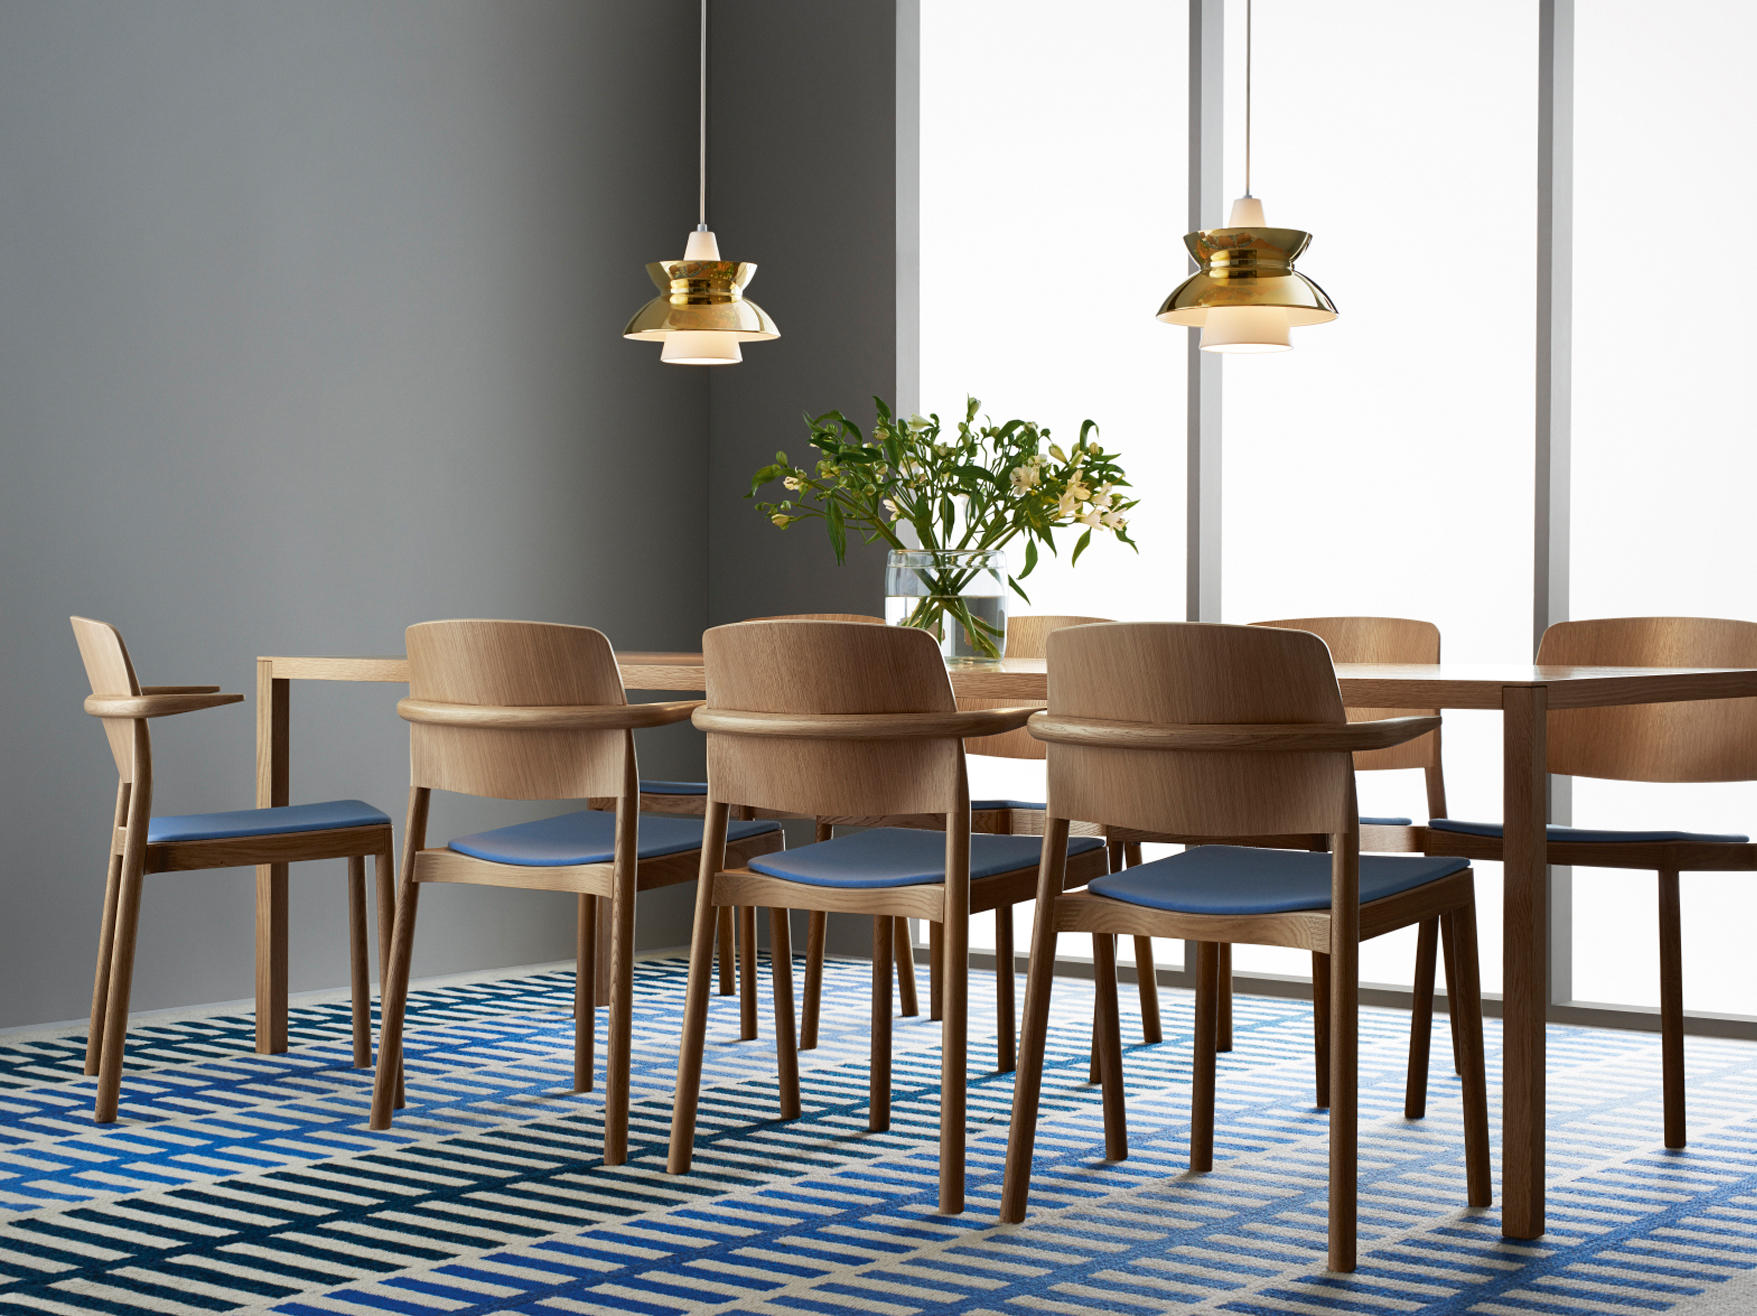 GRACE CHAIR Restaurant chairs from Swedese Architonic